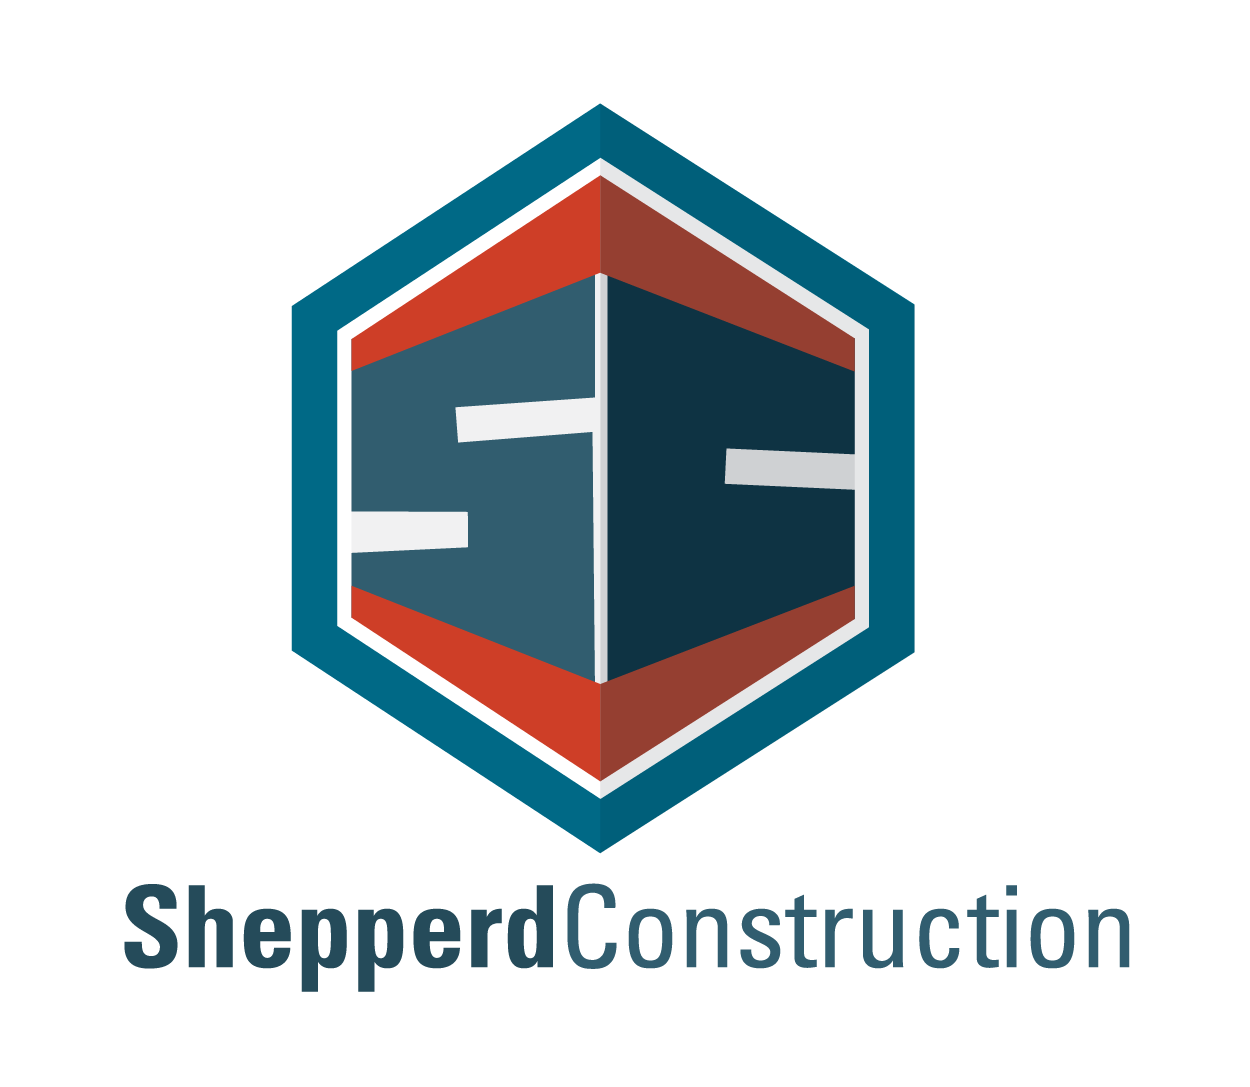 Building Construction General Contractors And Operative Builders